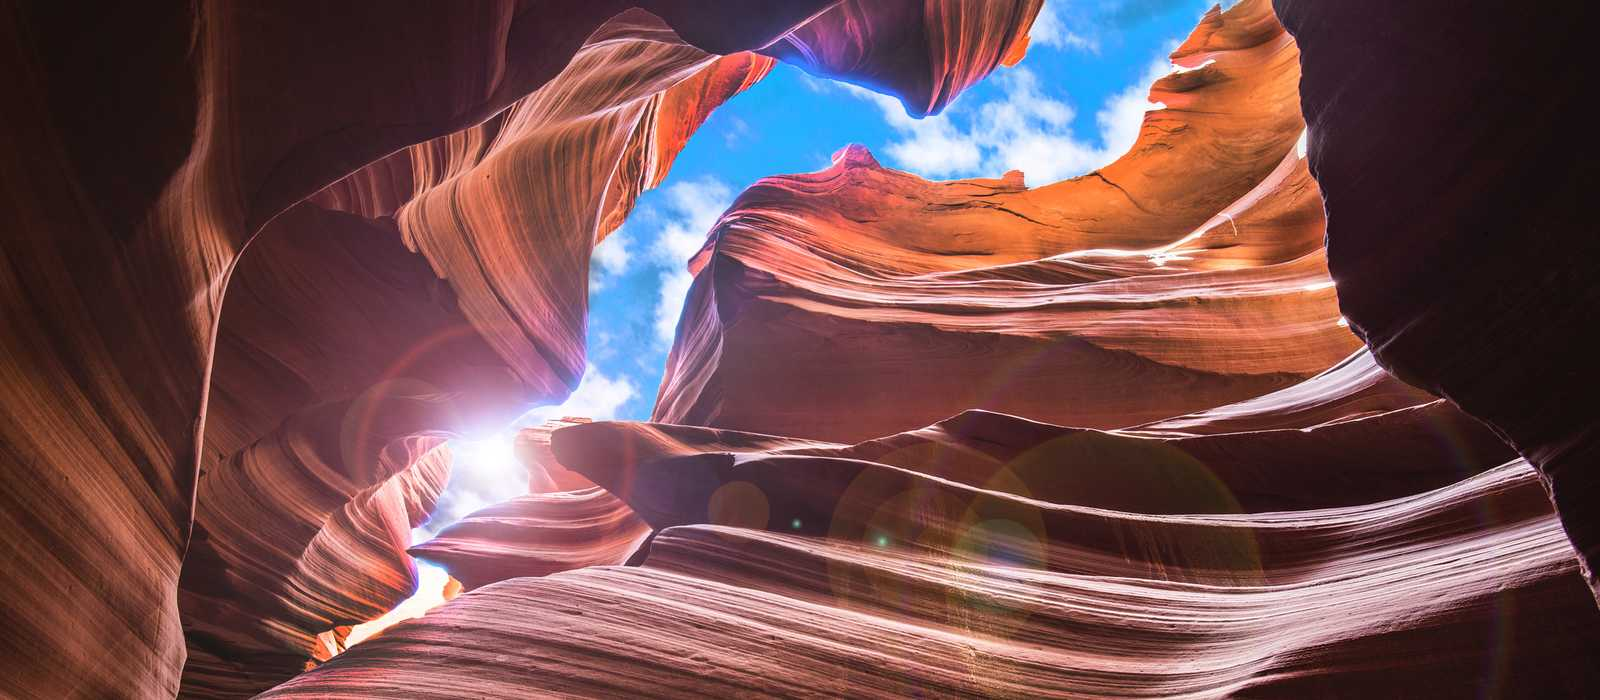 Der Antelope Slot Canyon